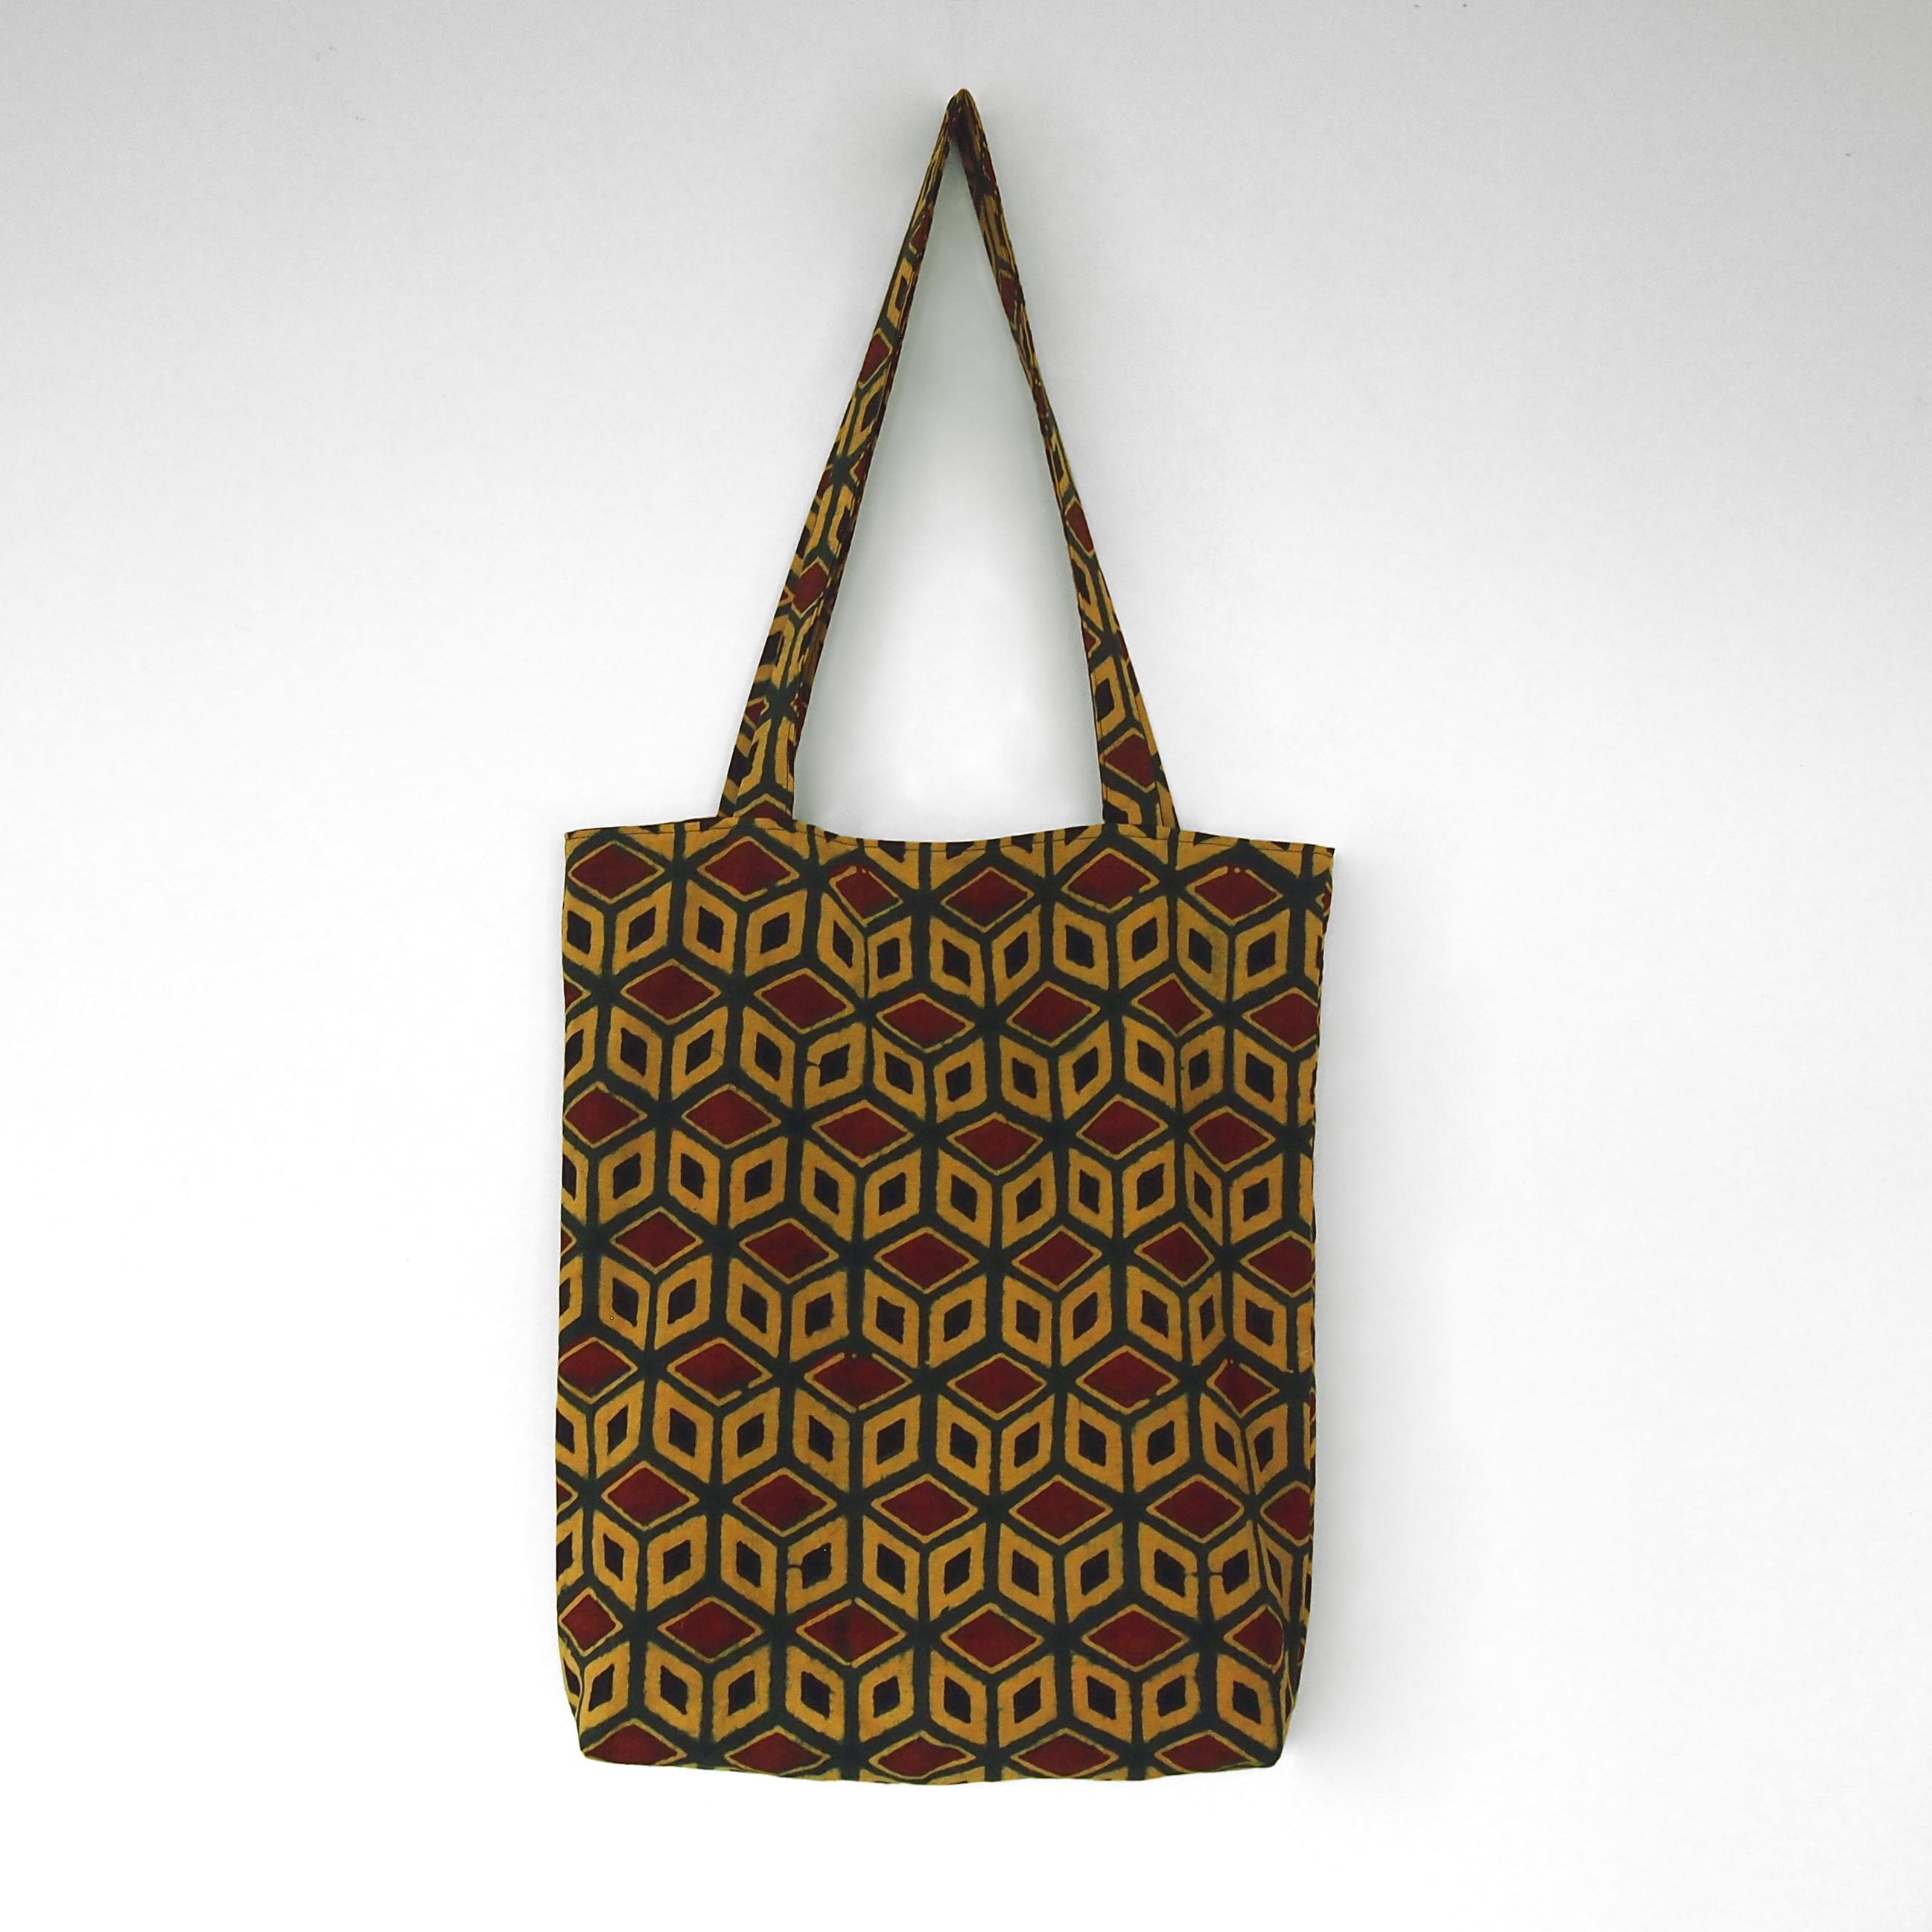 block printed cotton tote bag, yellow, green red black tumbling block design, natural dye, lined with black cotton, closed